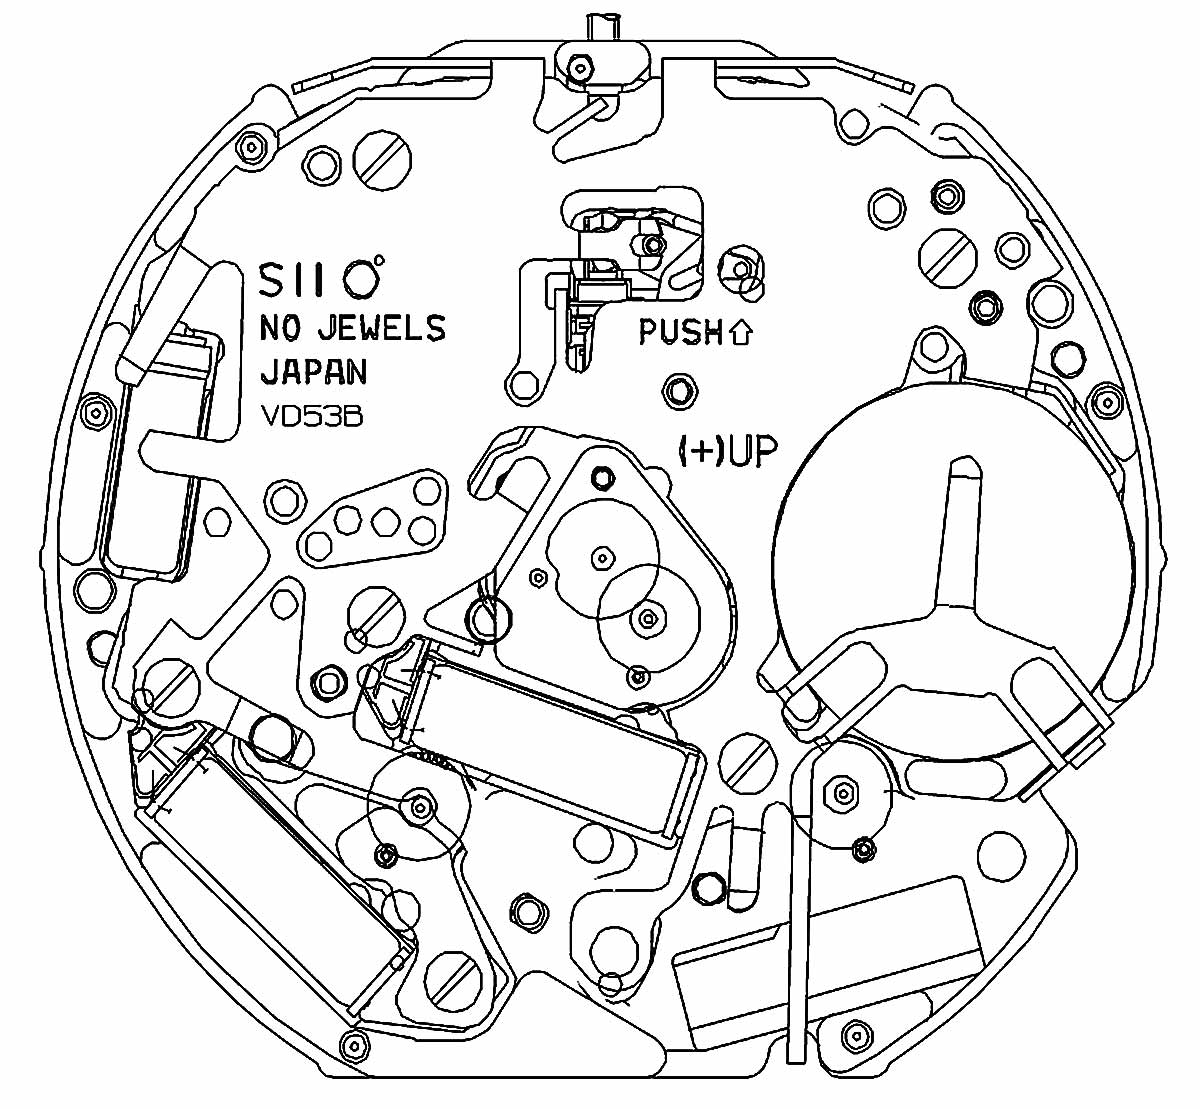 Hattori Seiko Caliber VD53B Quartz SII Movement Drawing TMI